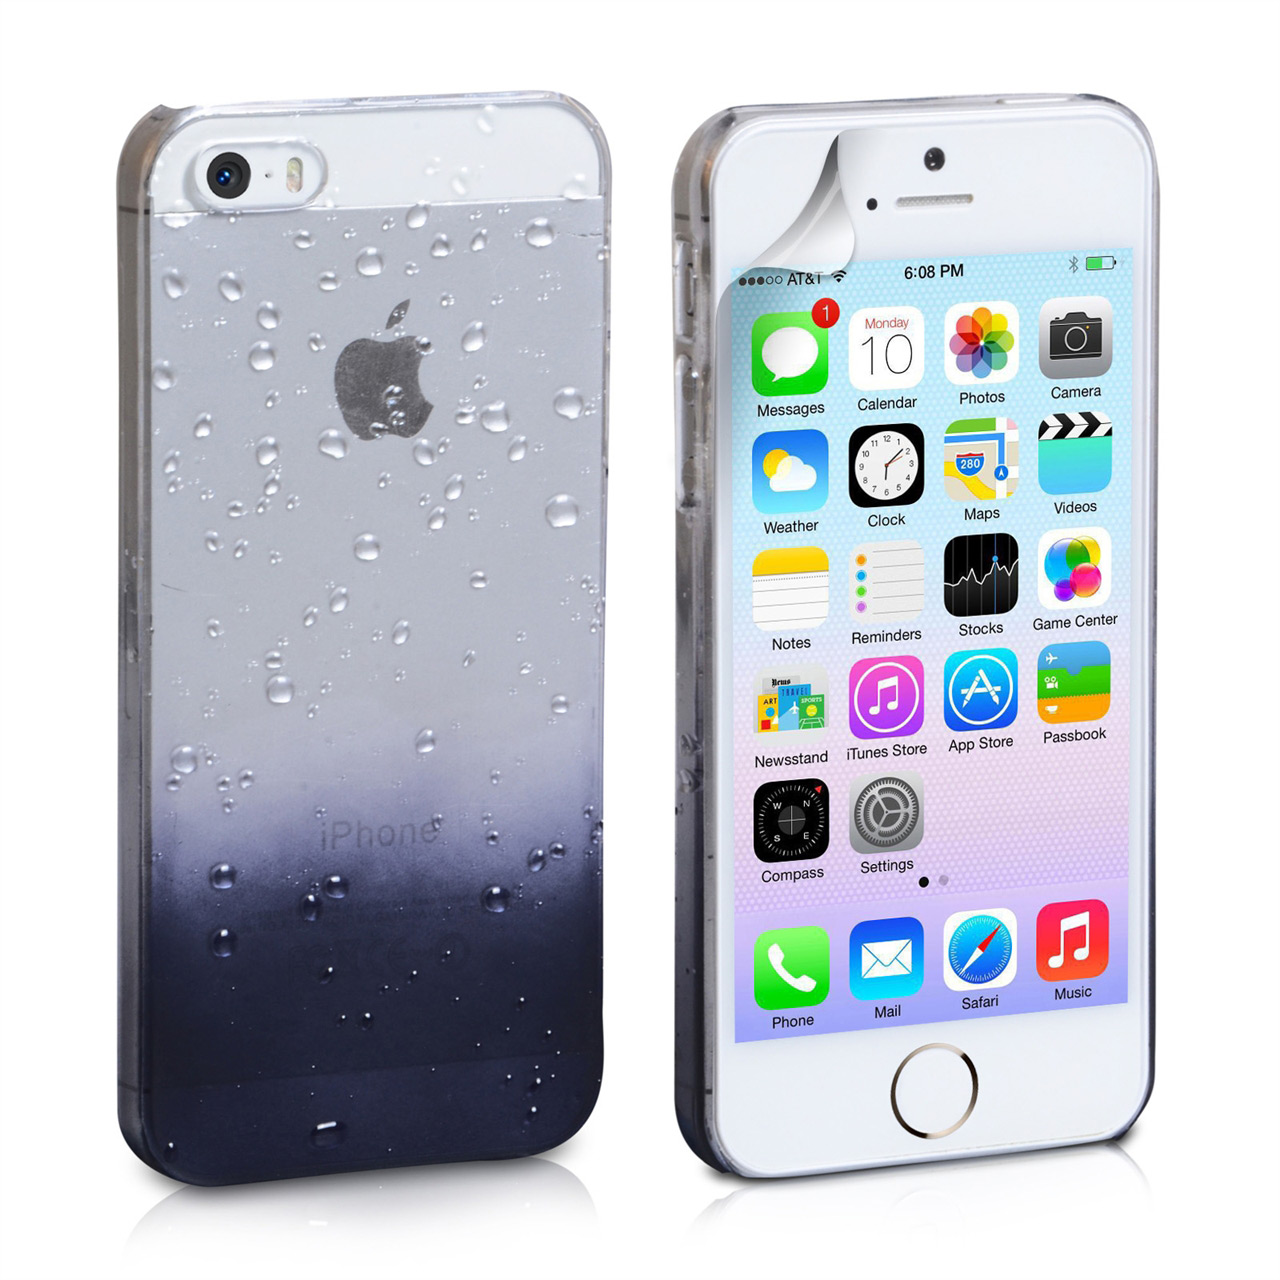 YouSave Accessories iPhone 5 / 5S Black Raindrop Hard Case